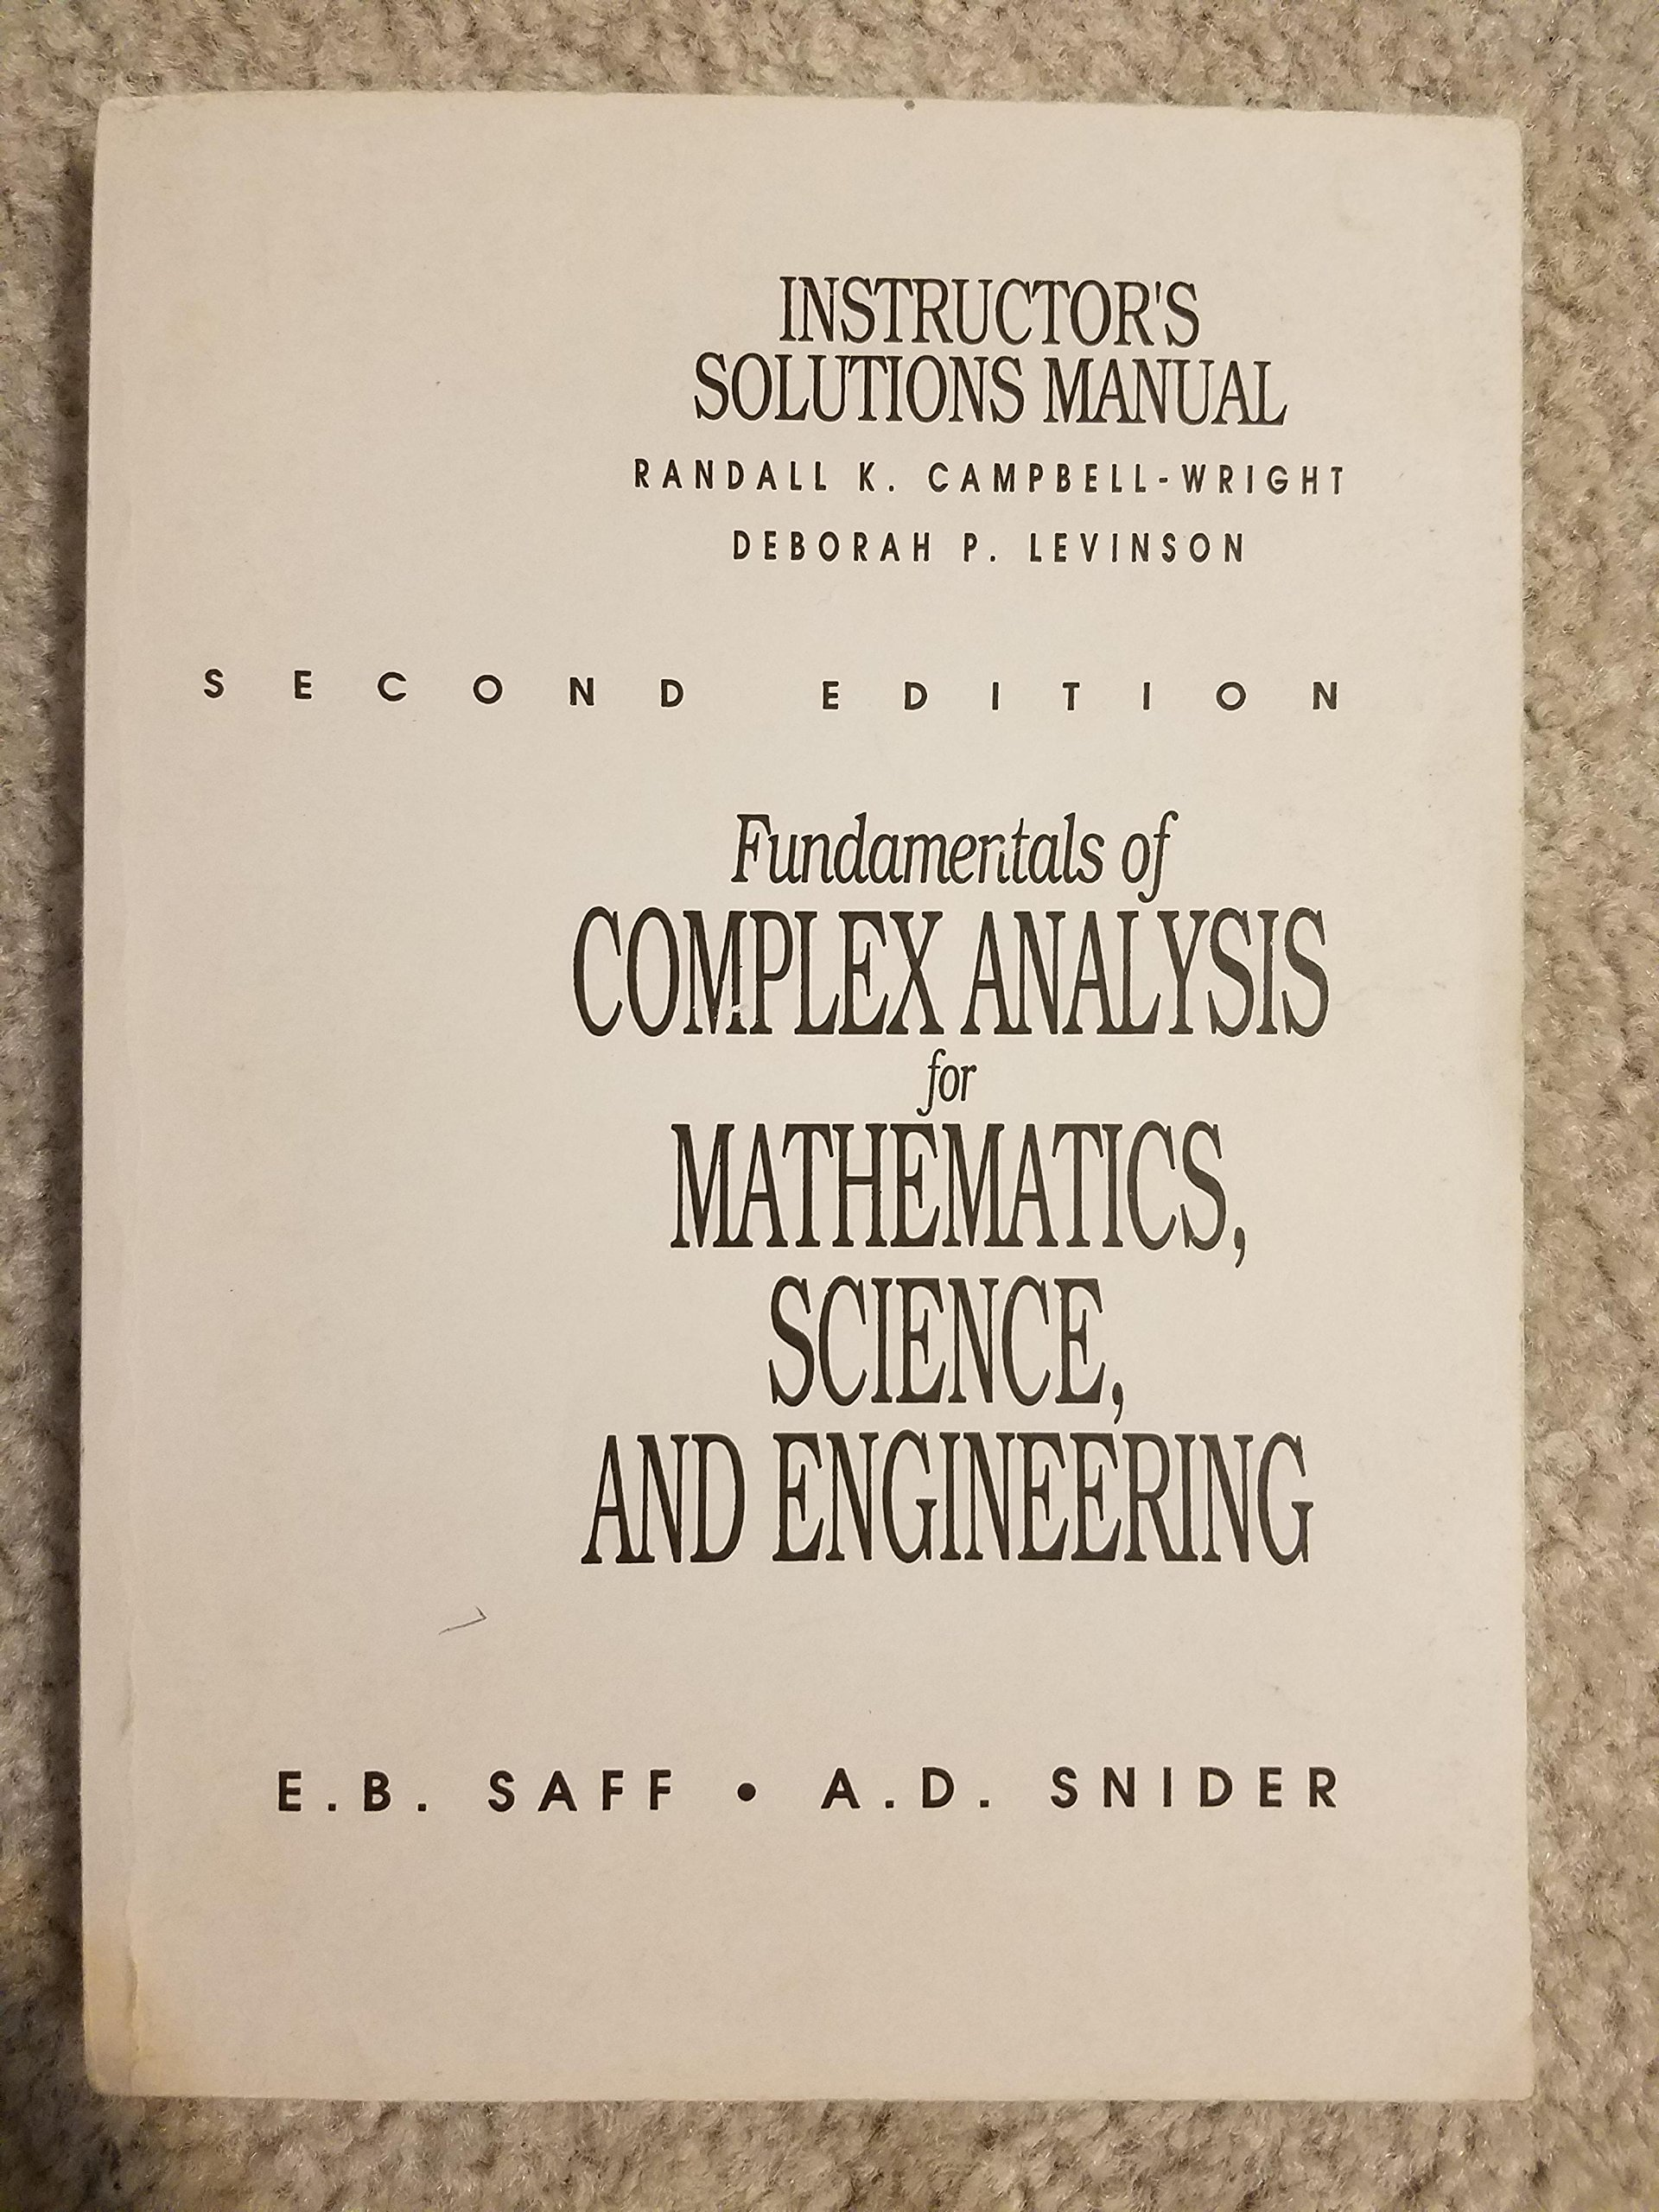 Instructor's Solution Manual: Fundamentals of Complex Analysis for  Mathematics, Science, and Engineering 2nd Edition: Campbell-Wright and  Levinson Saff and ...